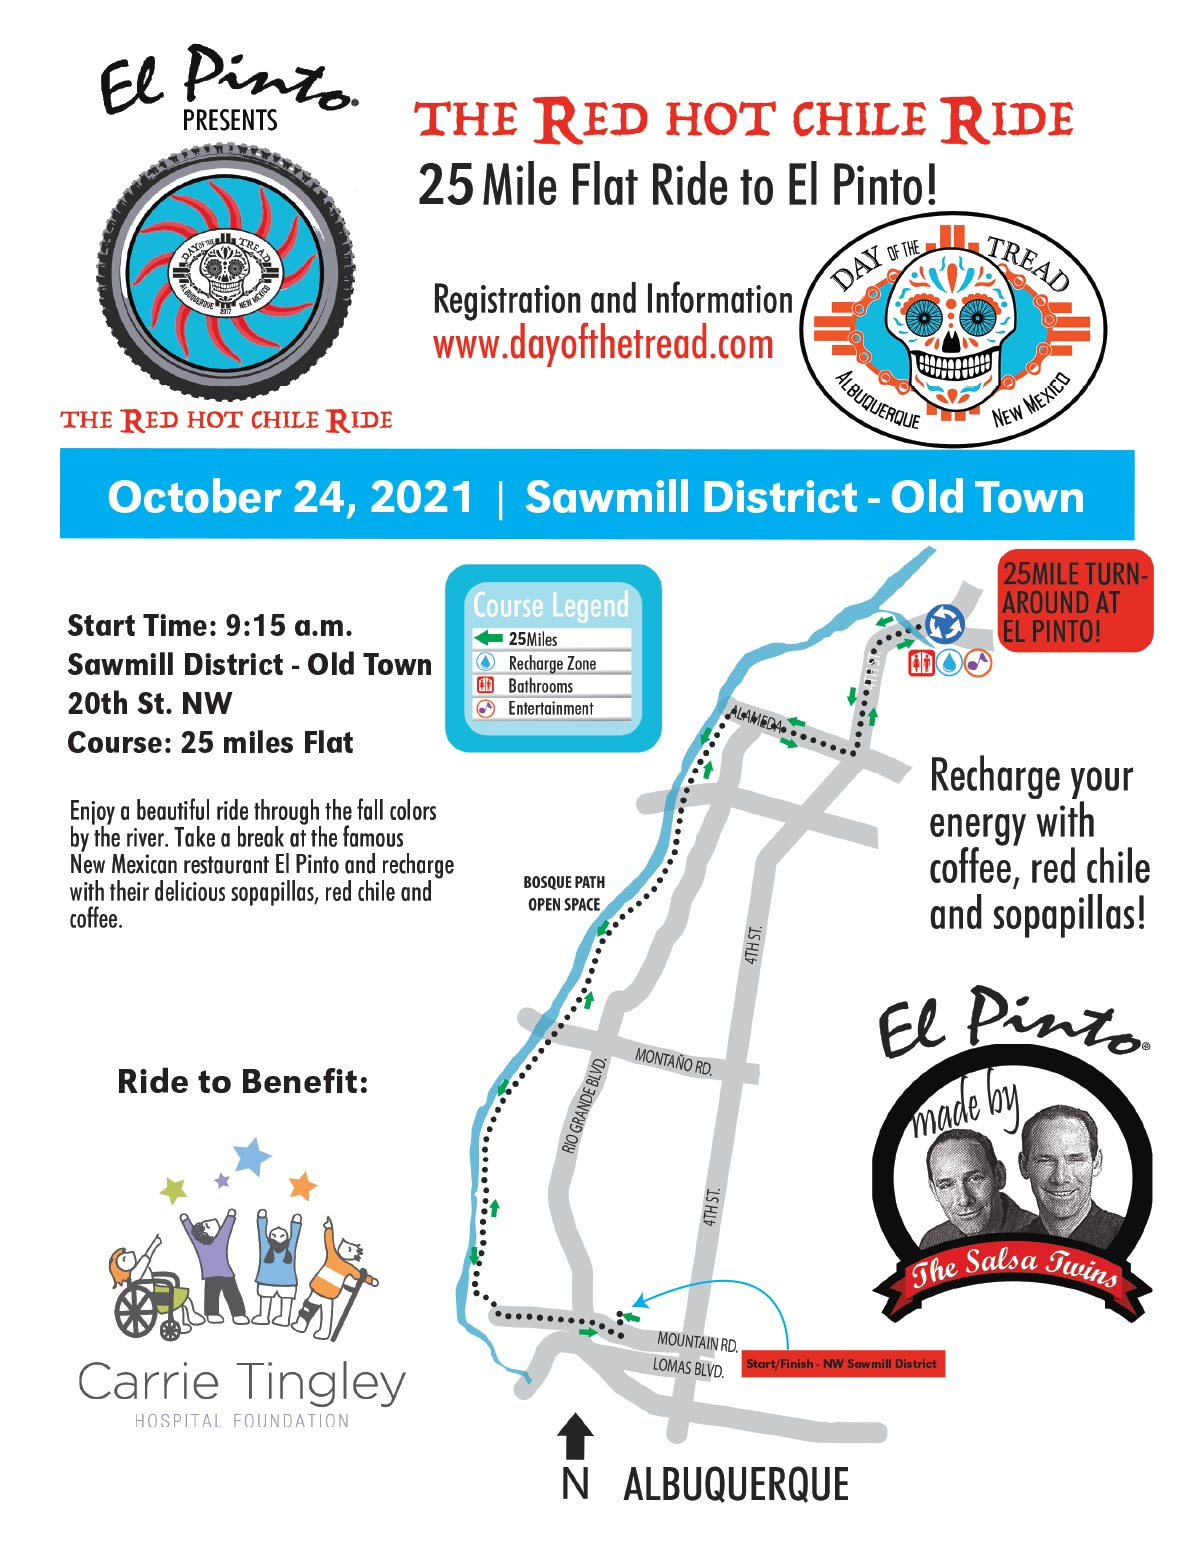 Red Hot Chile Ride map/flyer